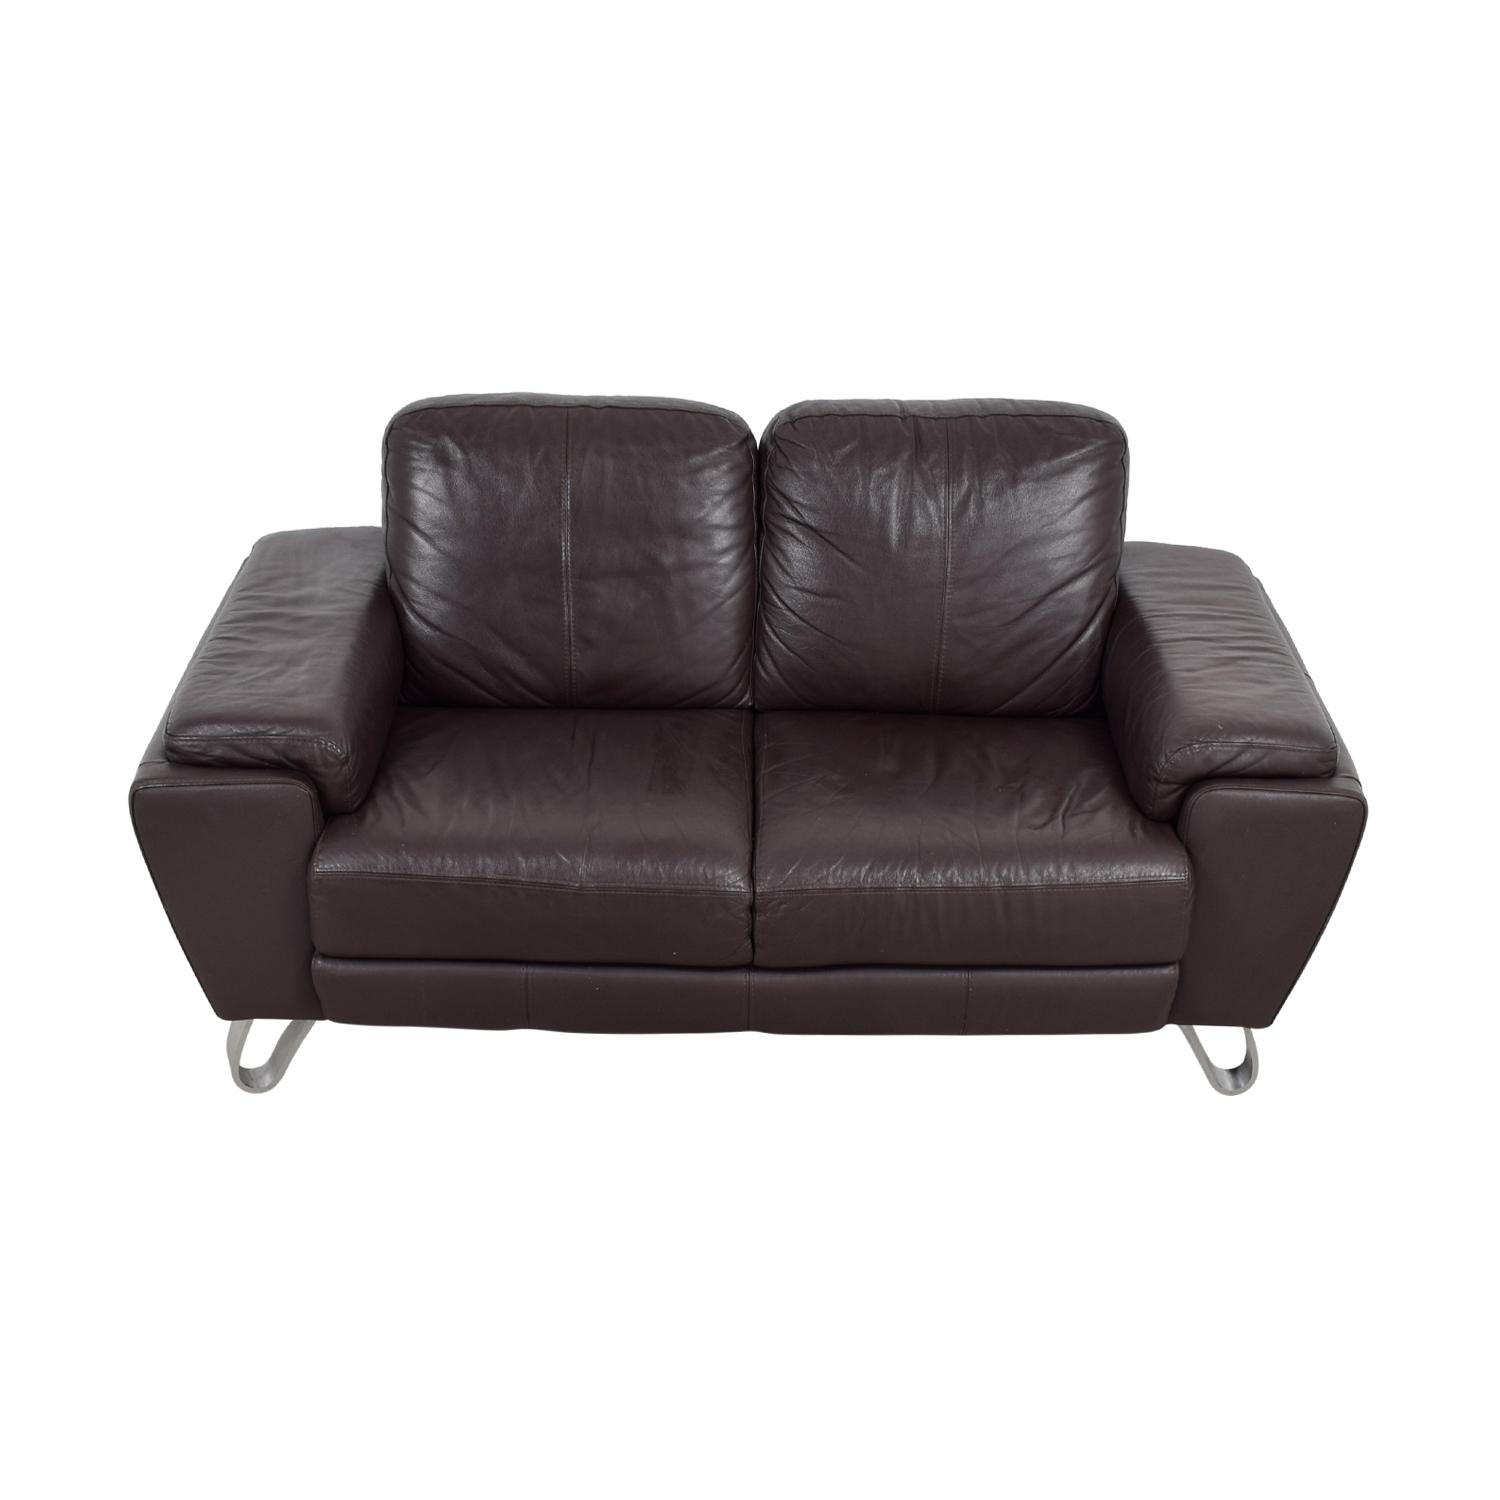 buy Michael Angelo Design Michael Angelo Design Brown Leather Loveseat online